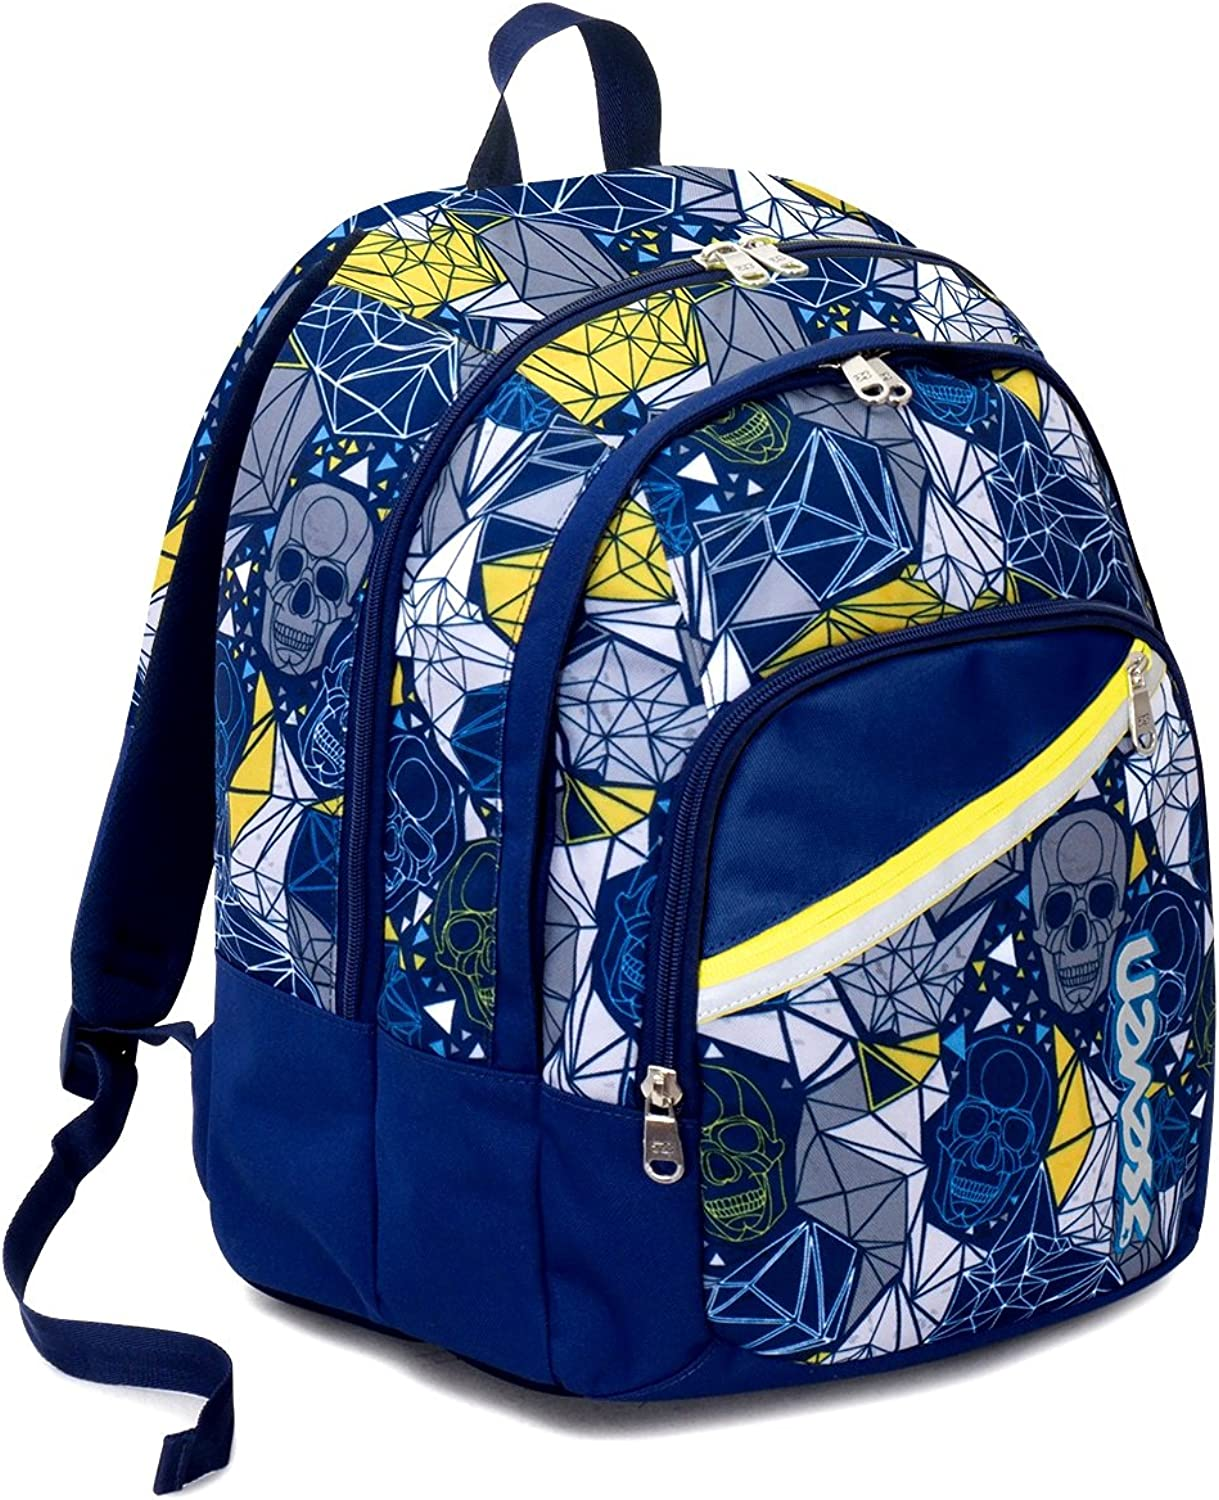 Backpack School Fit Seven , LUCKY , bluee Yellow , 28 Lt , Double Compartment , Primary Secondary School